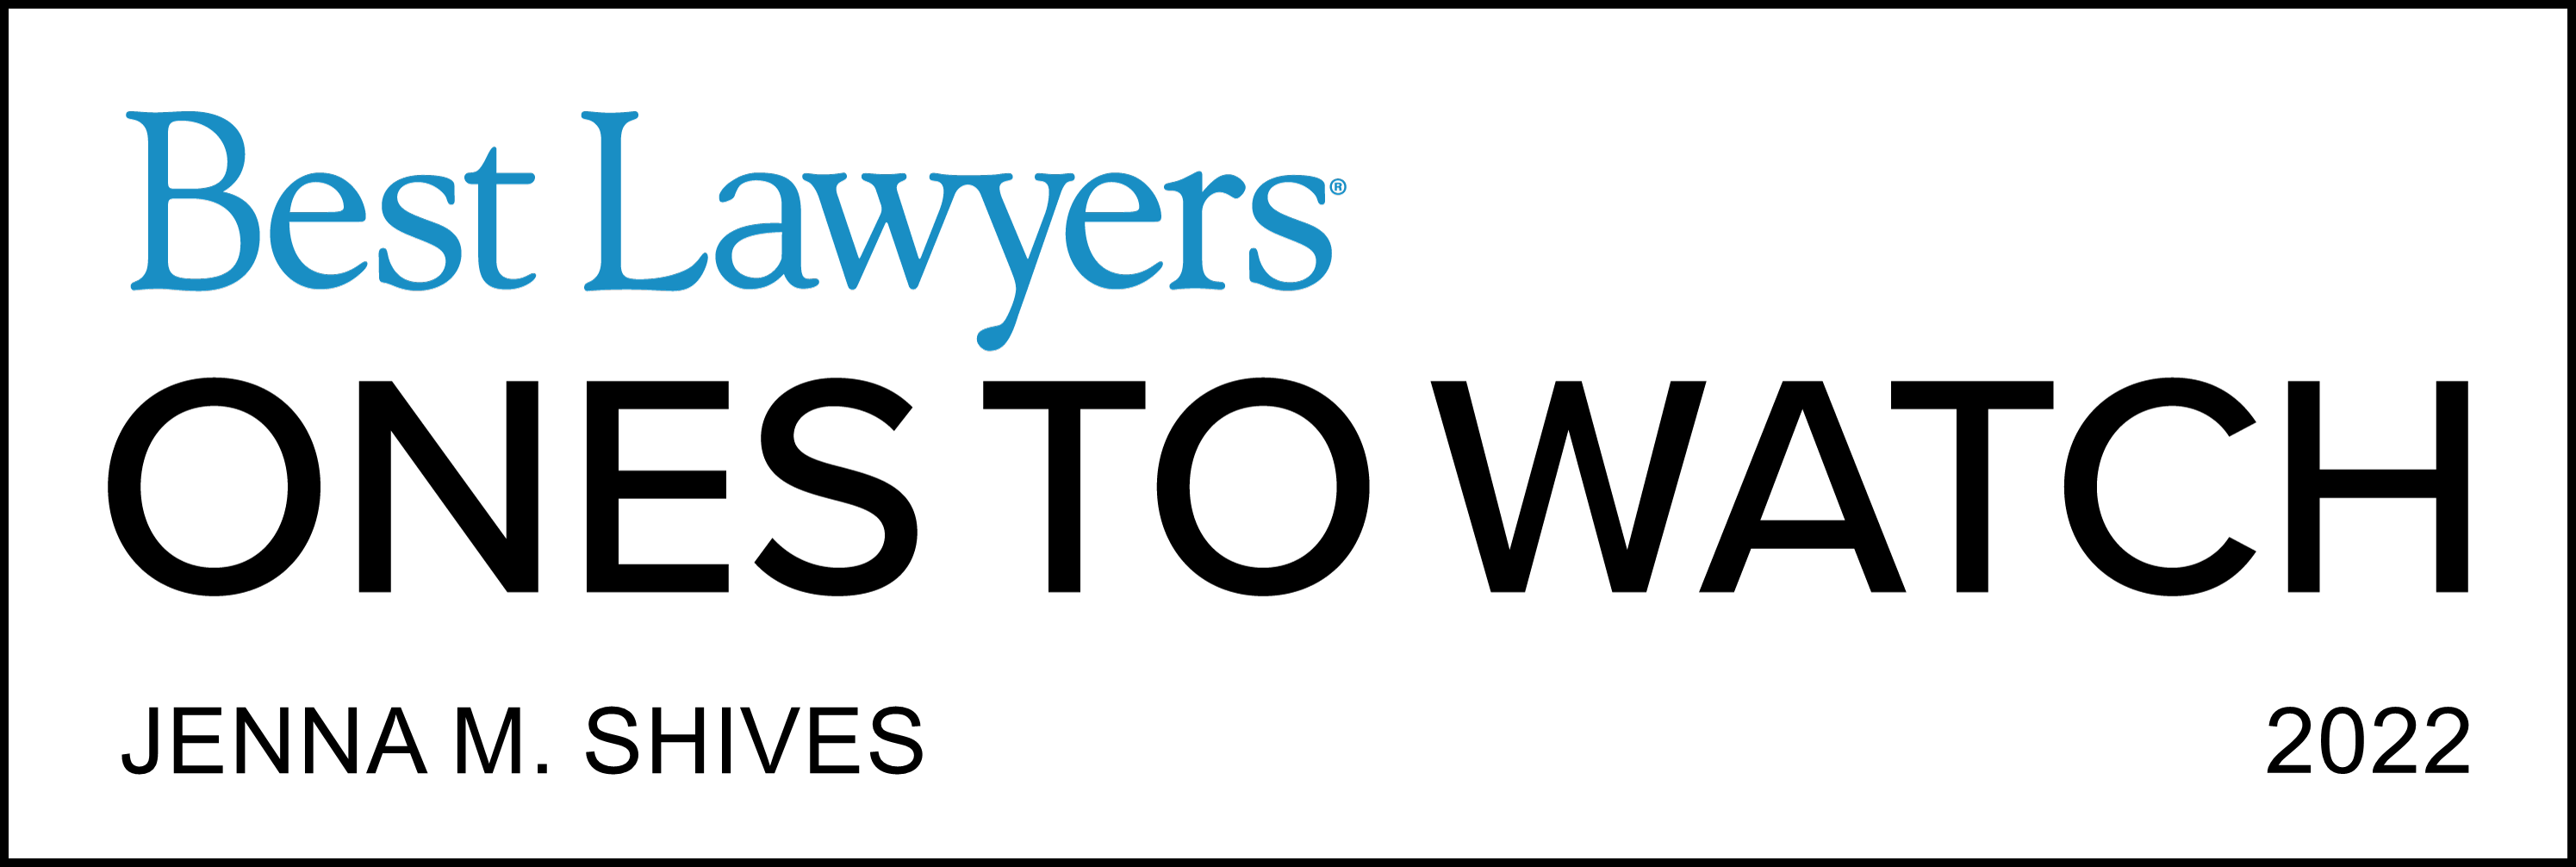 Jenna Shives Best Lawyers Ones to Watch 2022 Commercial Litigation